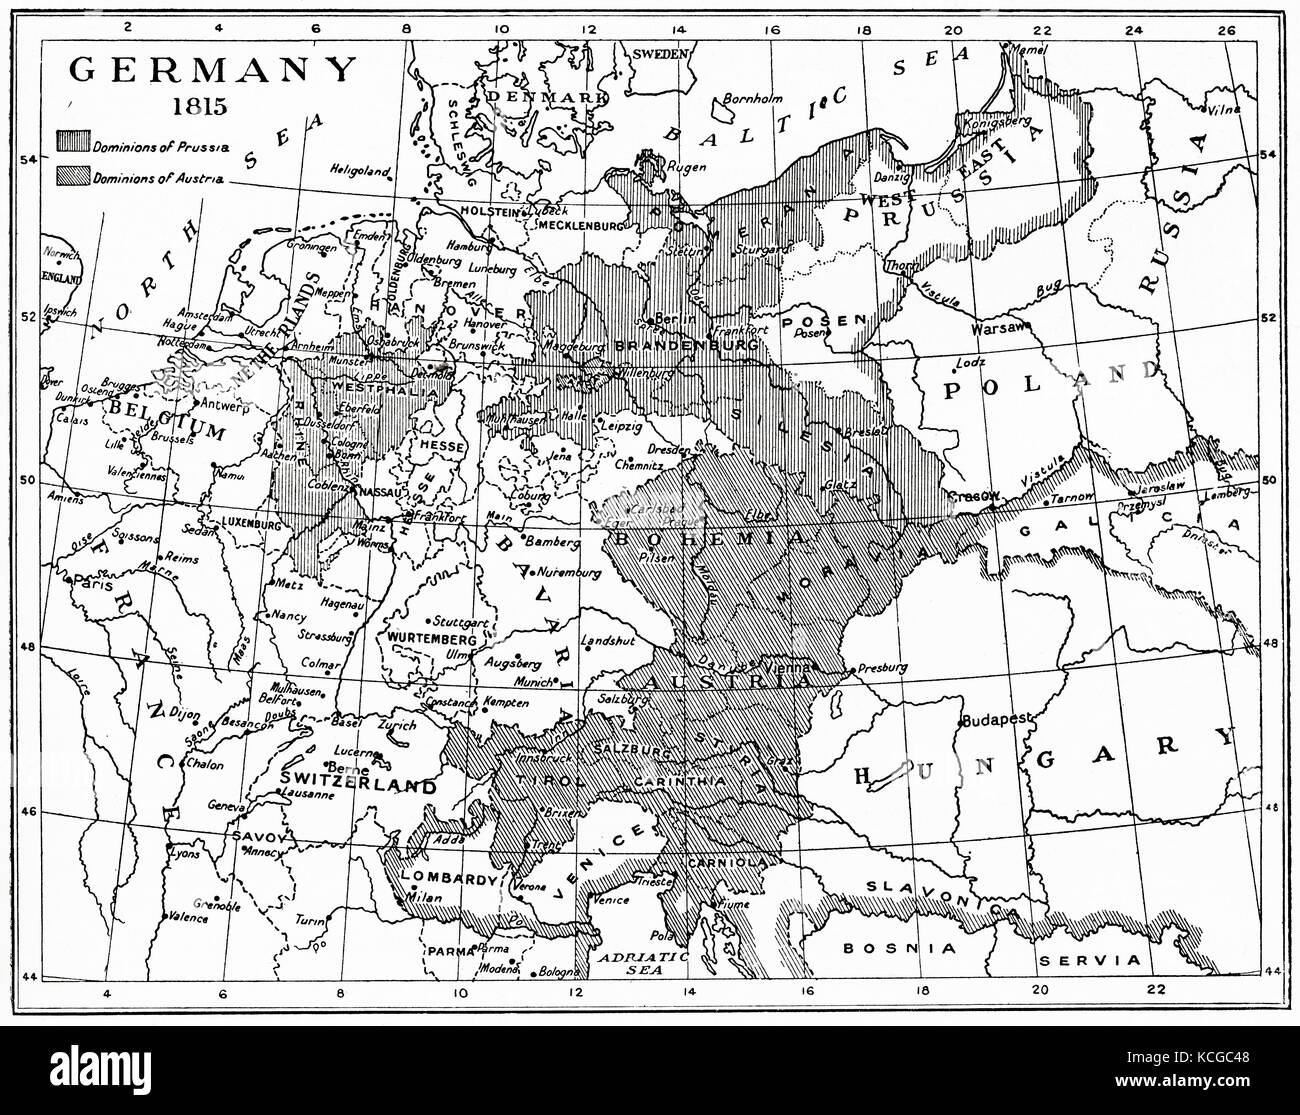 Map of Germany in 1815 after the Congress of Vienna.  From Hutchinson's History of the Nations, published 1915. - Stock Image